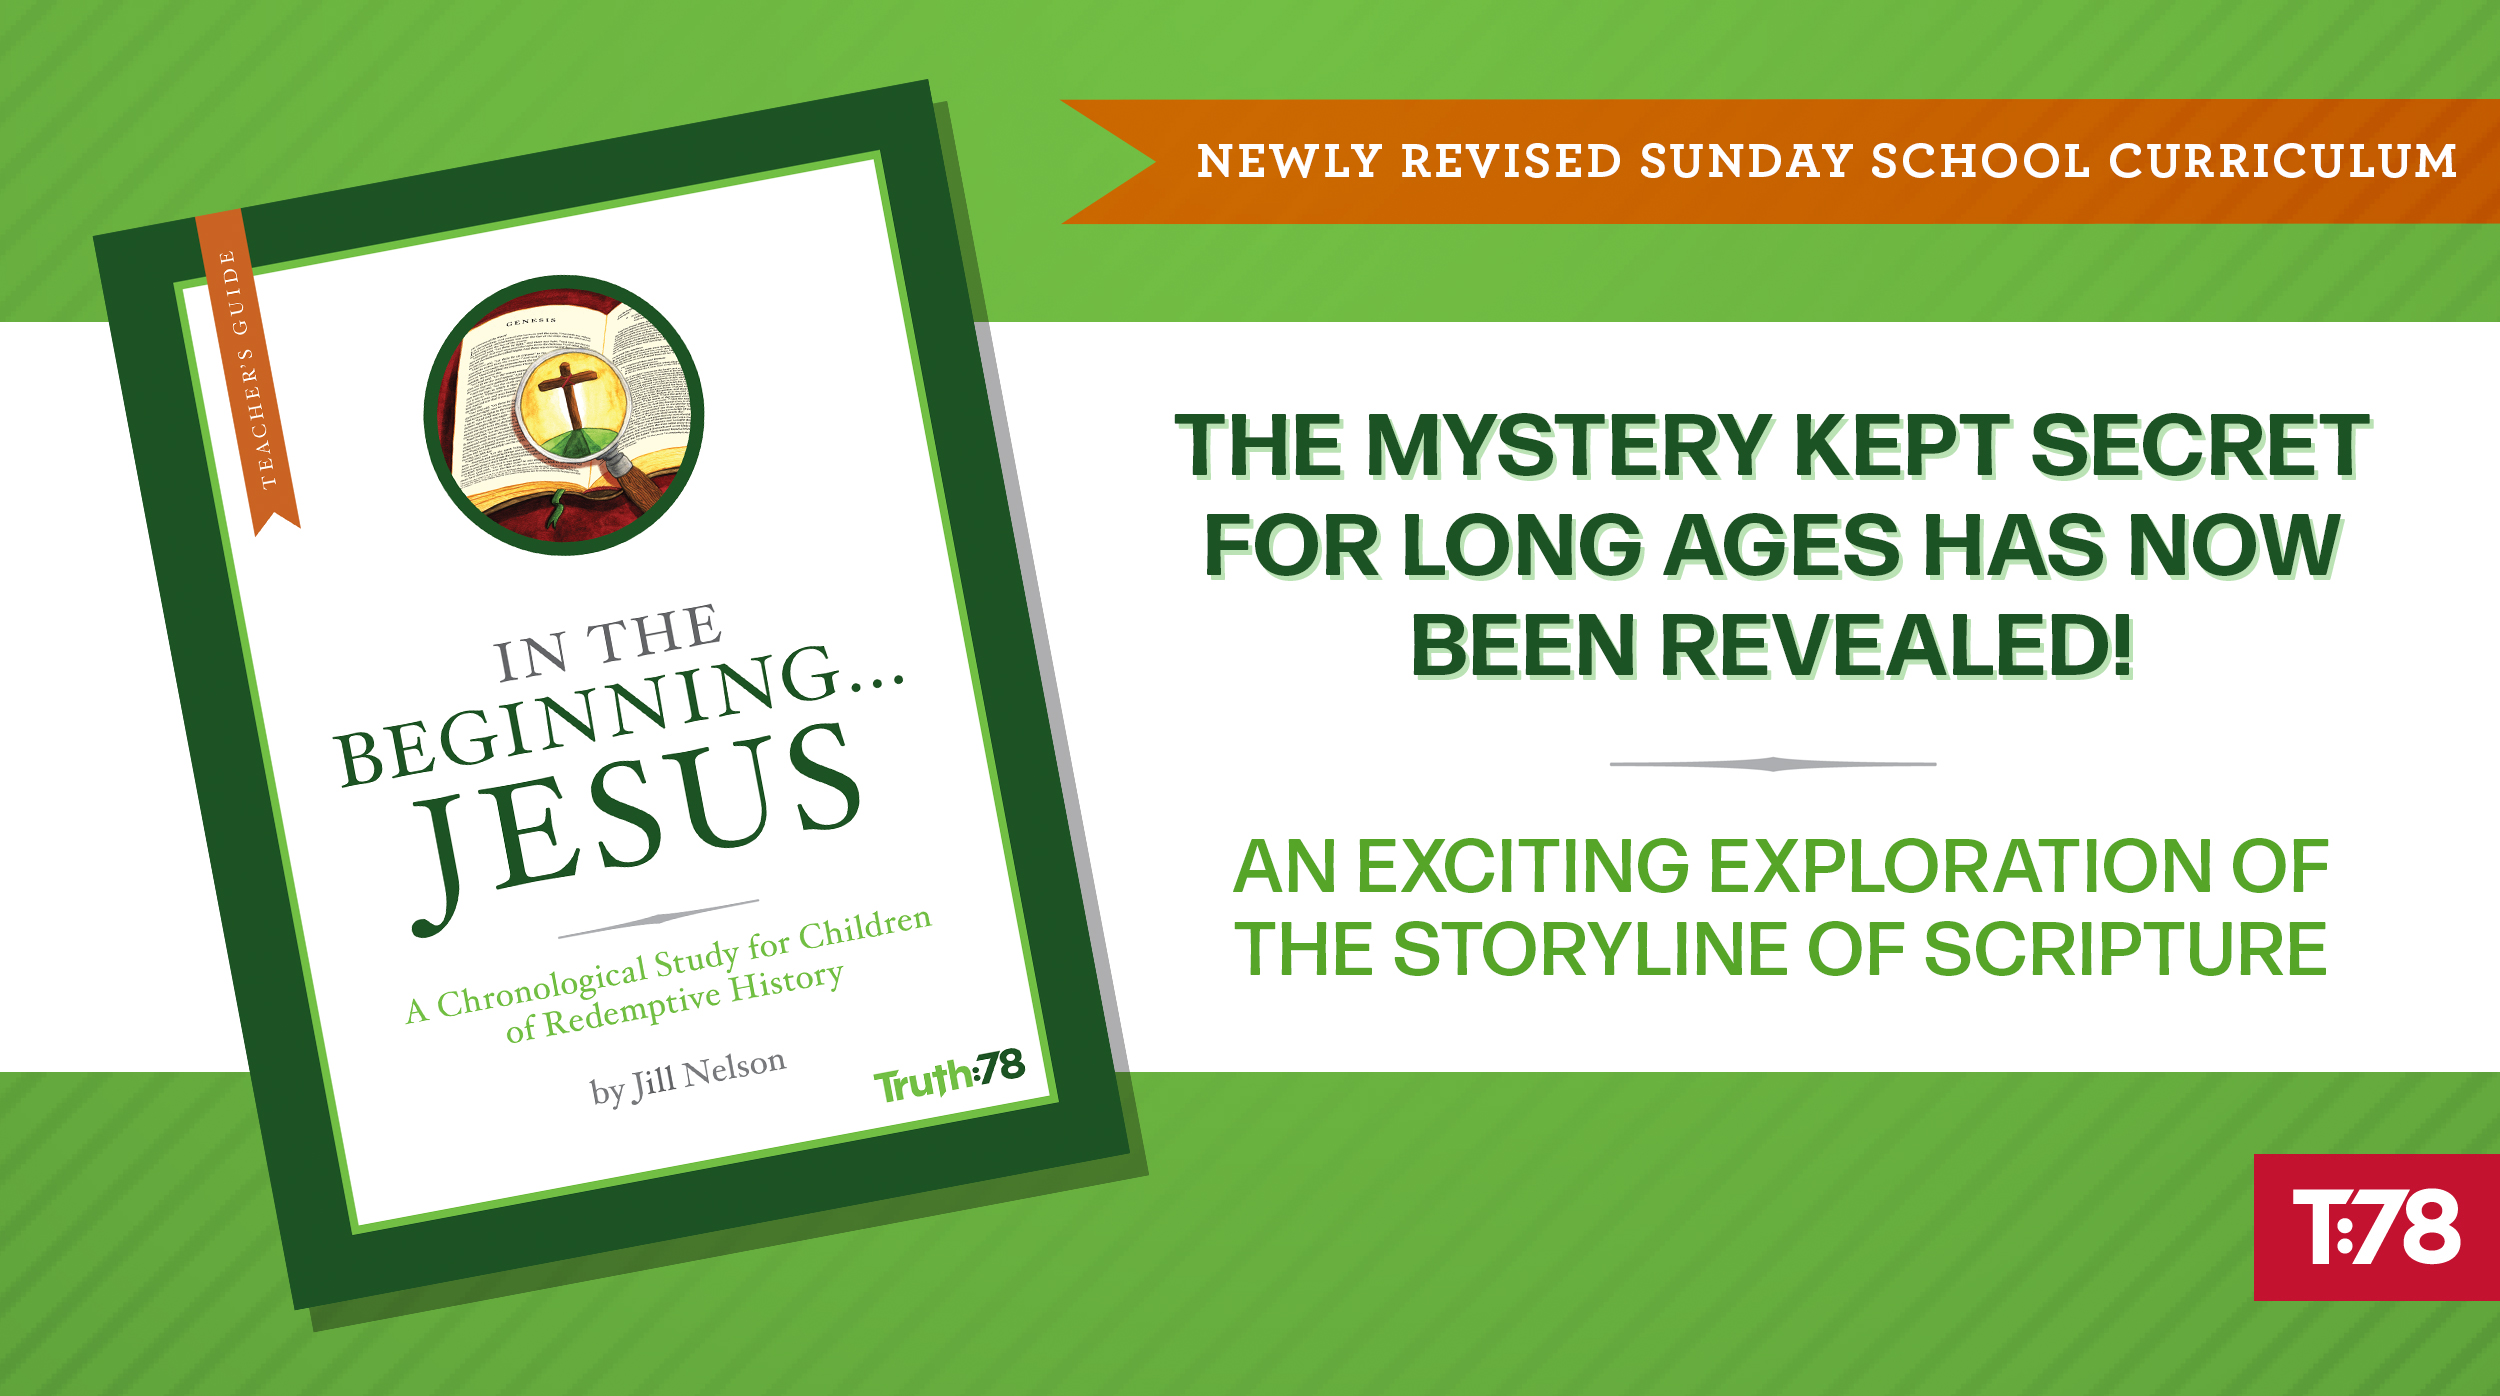 Revised In the Beginning...Jesus Curriculum Now Available